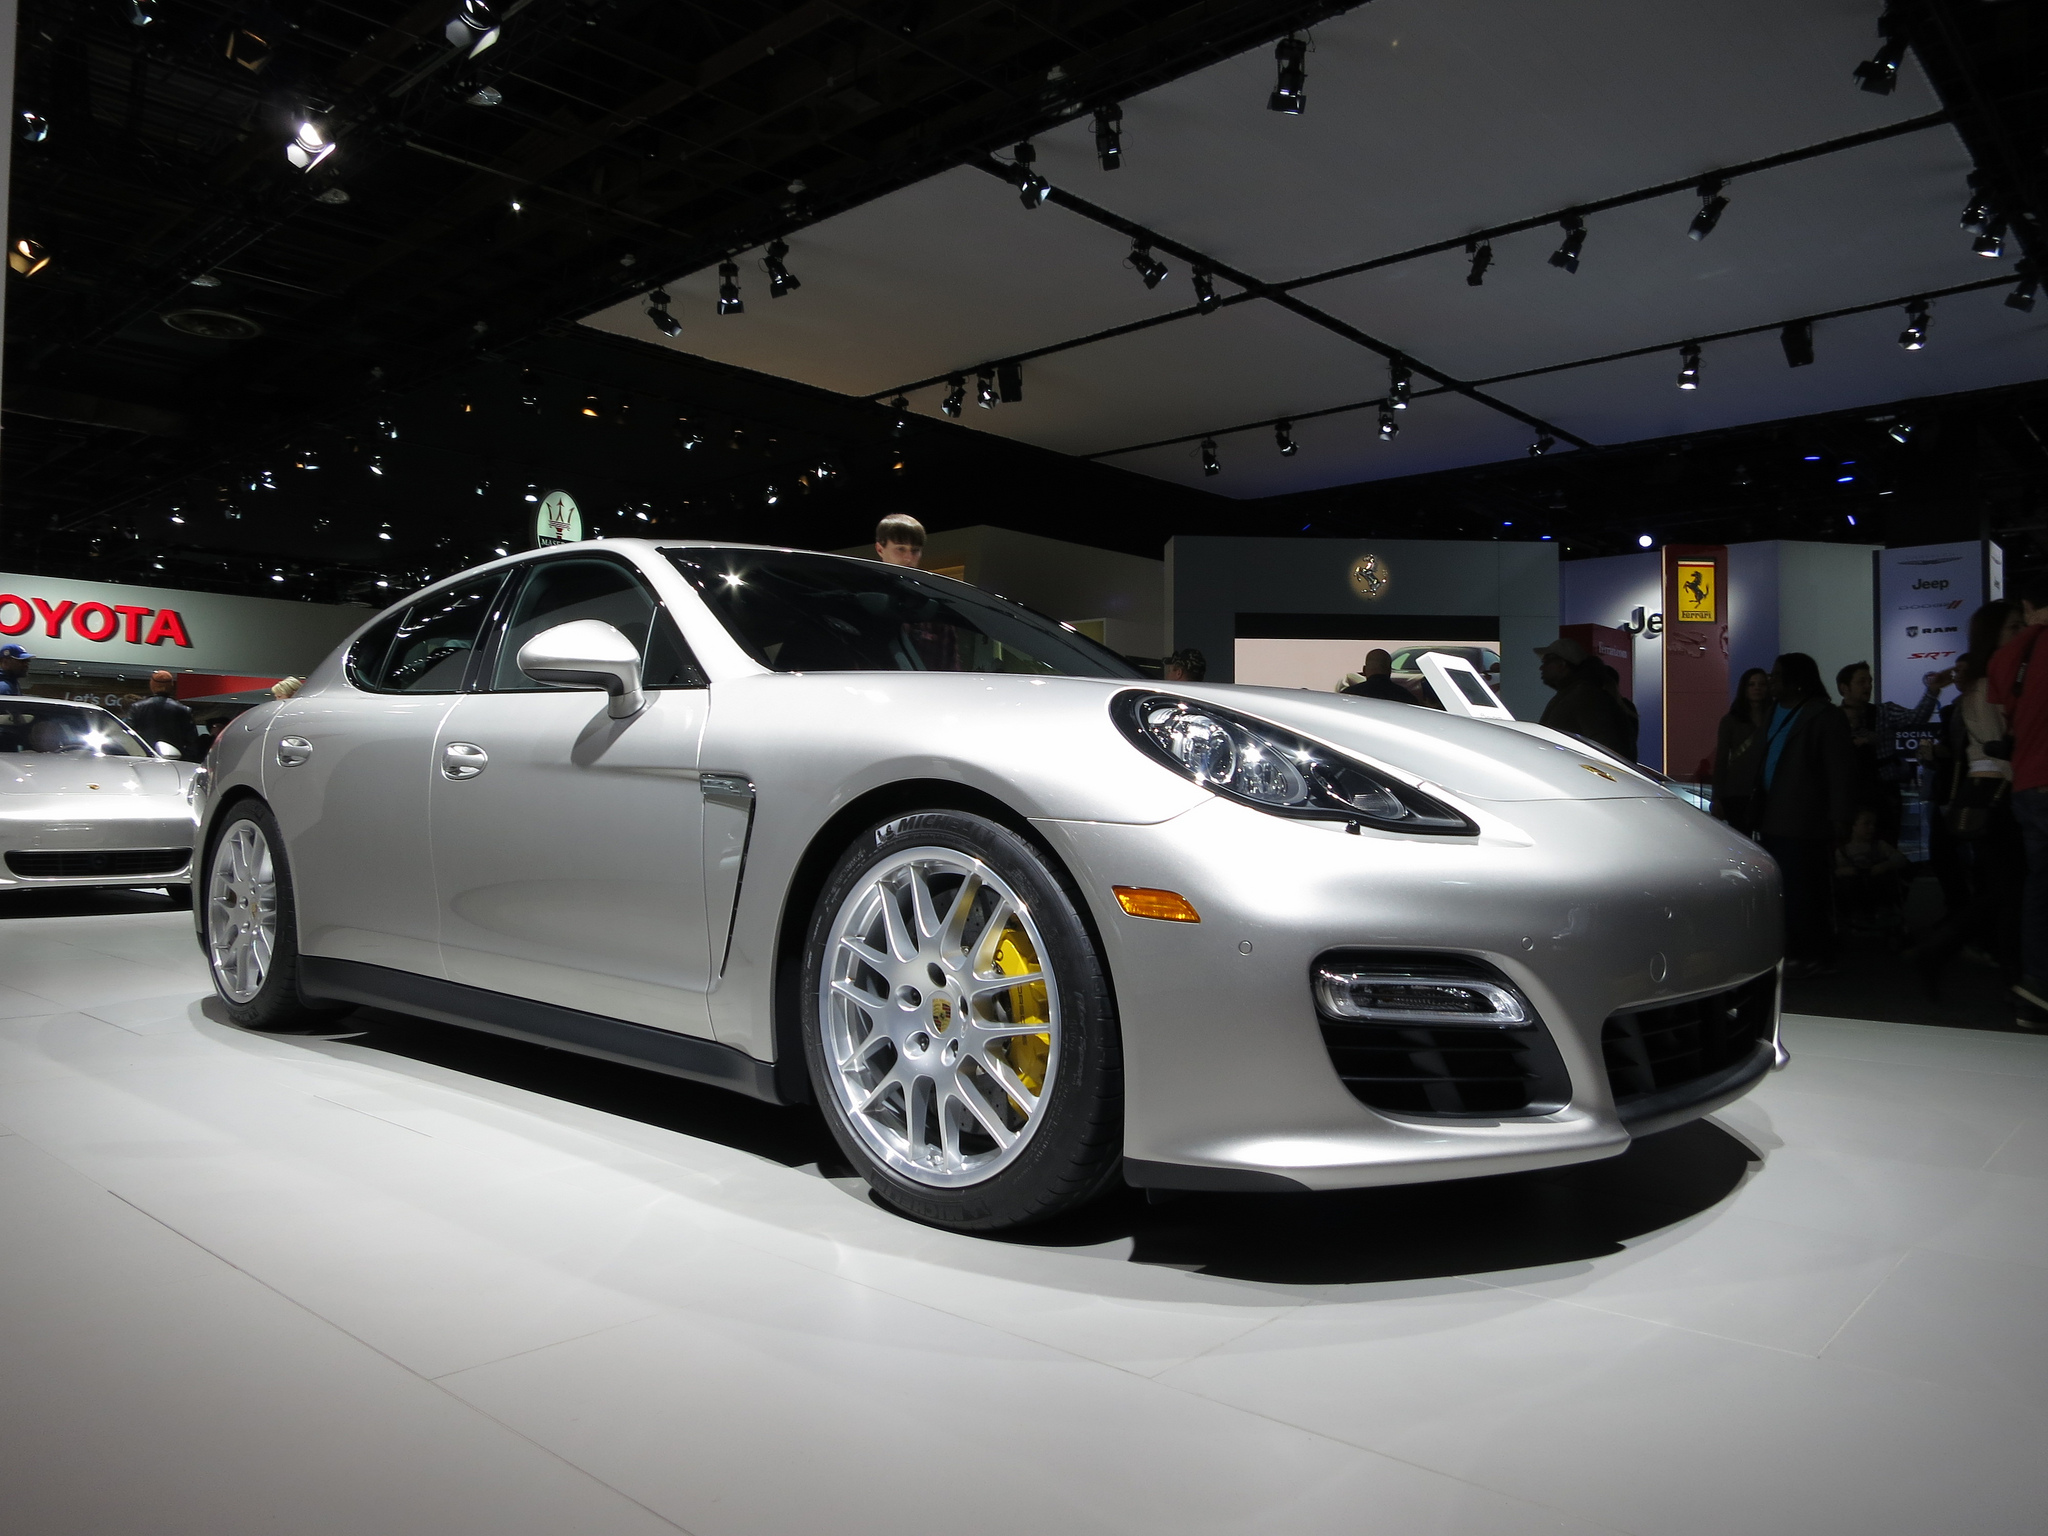 2013 Porsche Panamera at NAIAS 2013 By shaessig